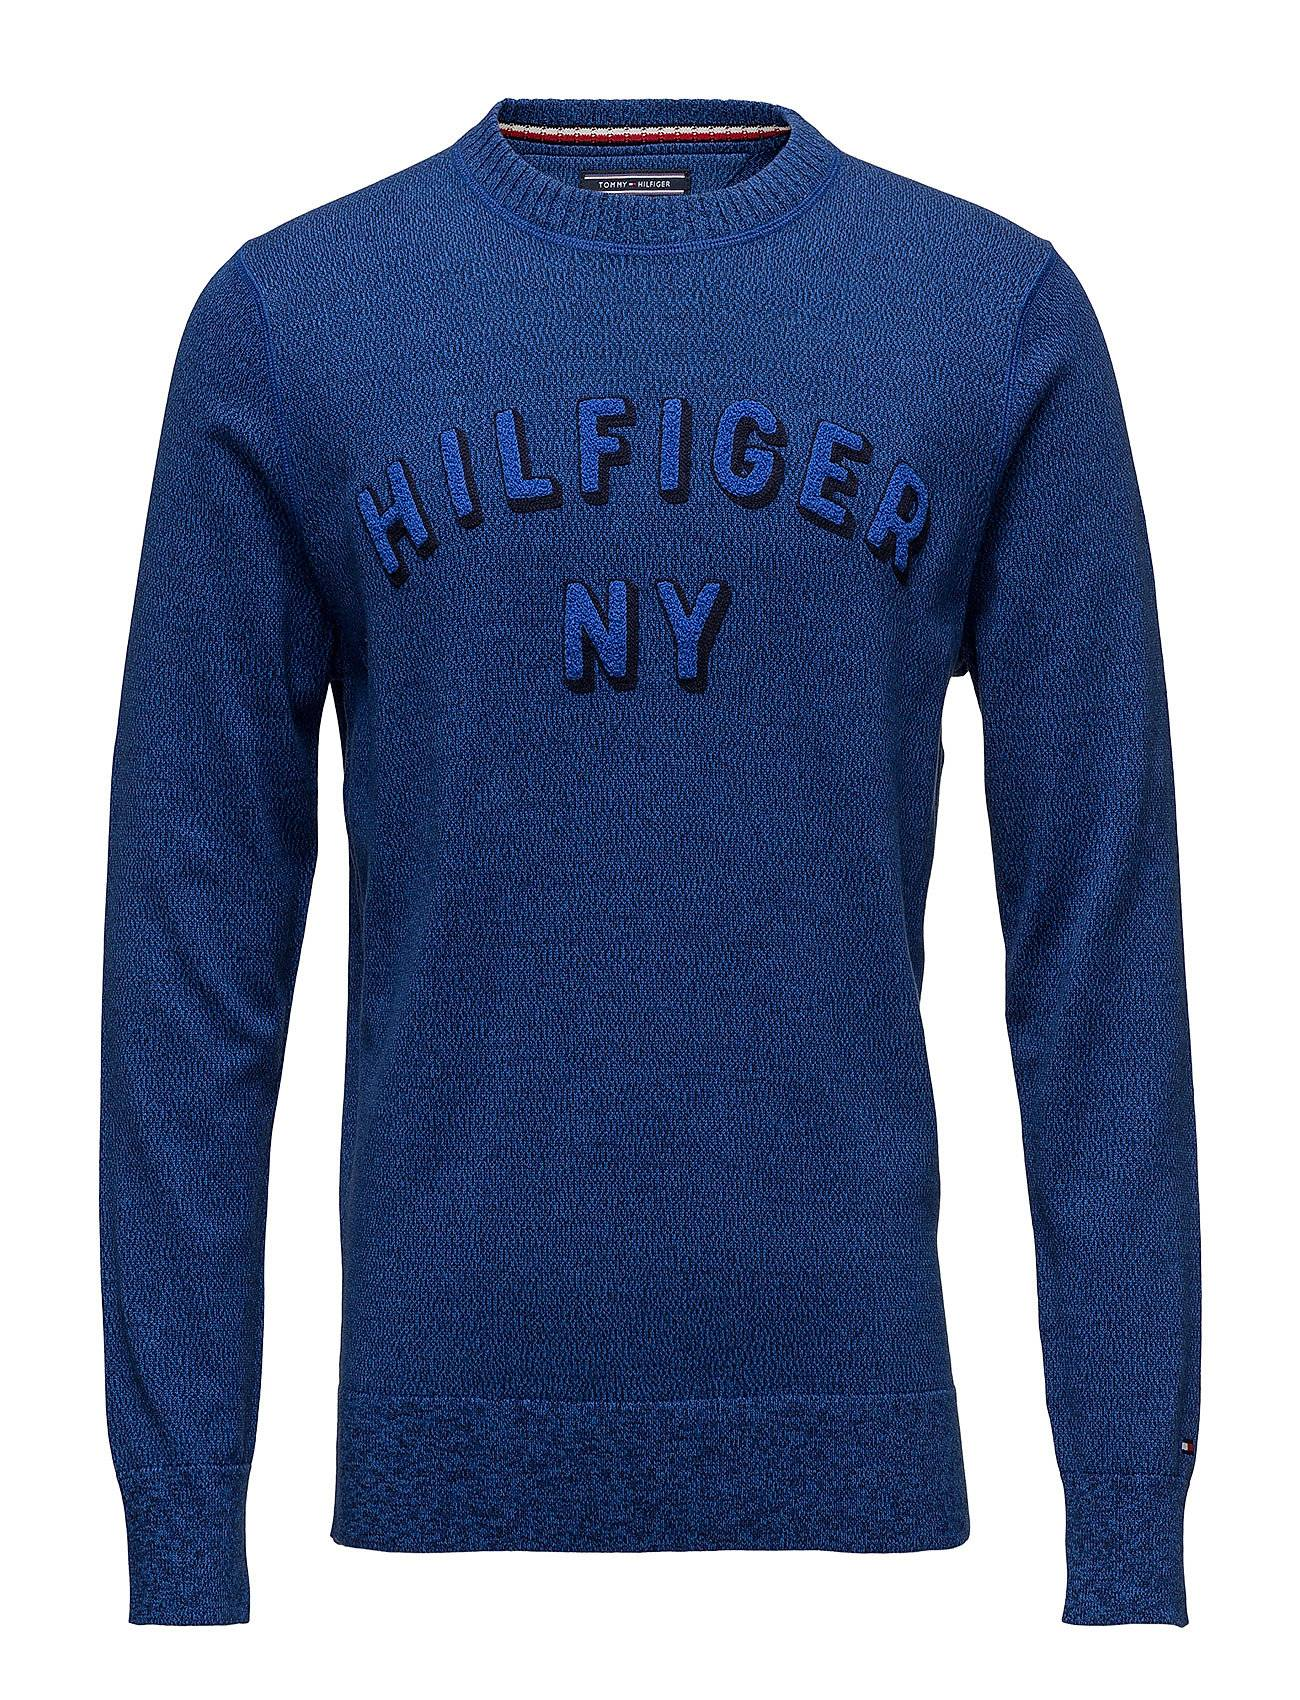 Tommy Hilfiger Structured Mouline Graphic Sweater